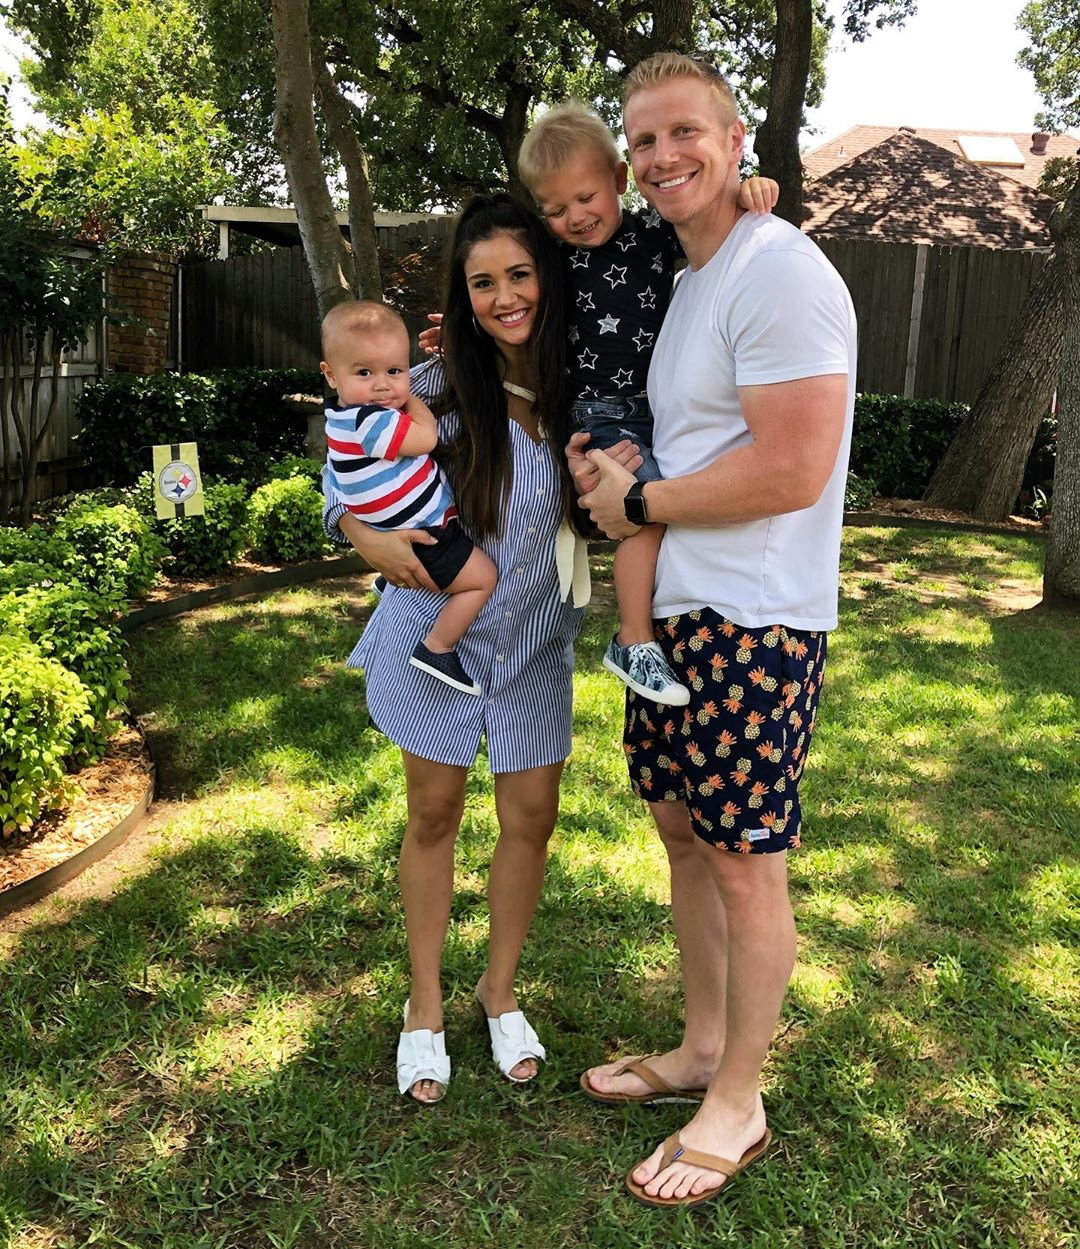 Catherine Giudici and Sean Lowe Family Album - The Lowe family celebrated Memorial Day 2019 in patriotic colors and a sweet family picture.